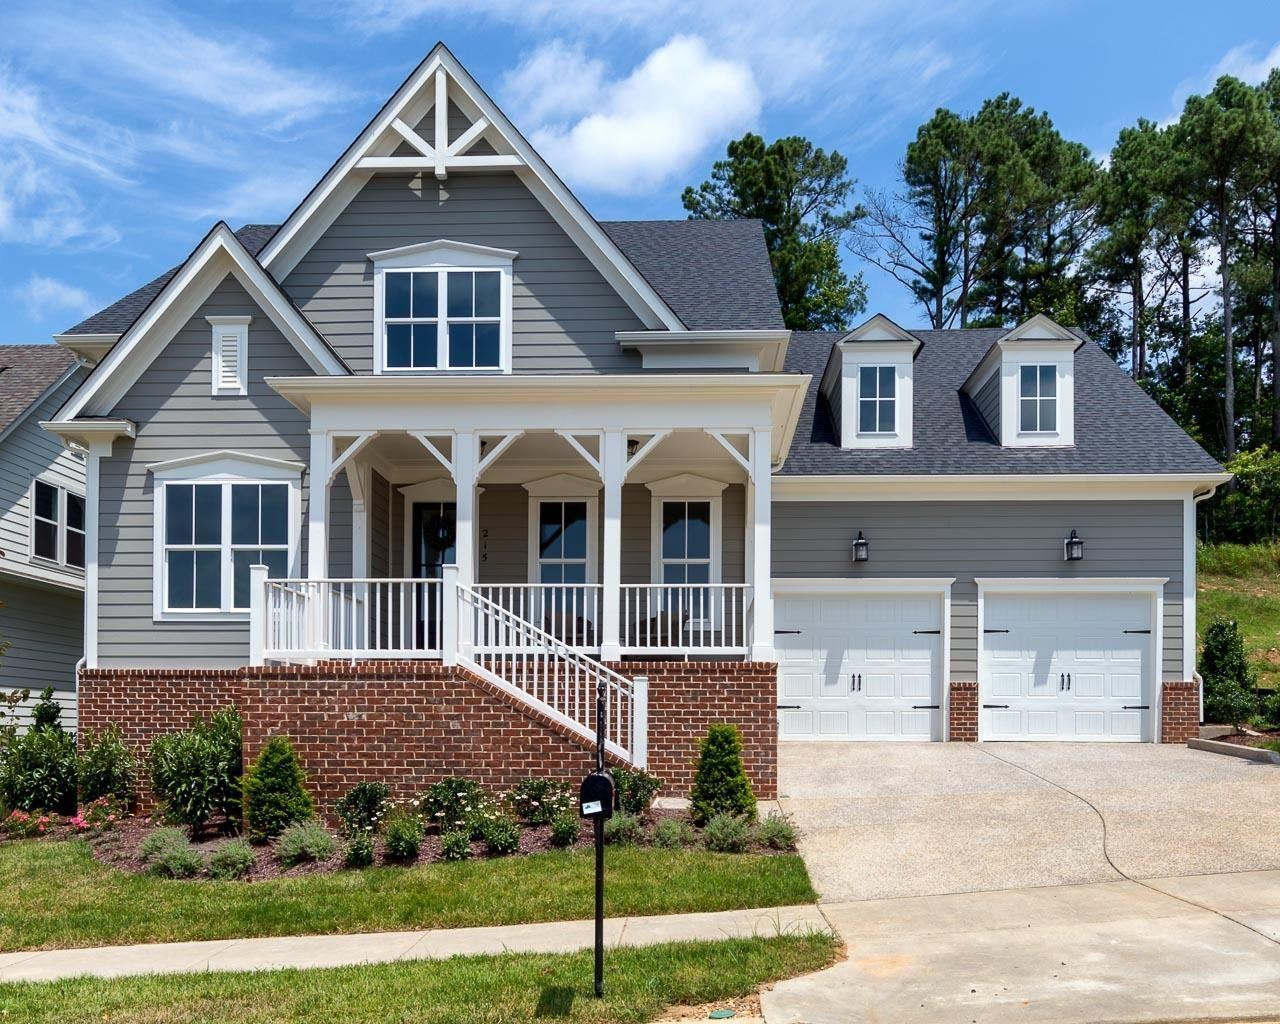 Photo of 215 Halswelle Dr,, Franklin, TN 37064 (MLS # 2135539)